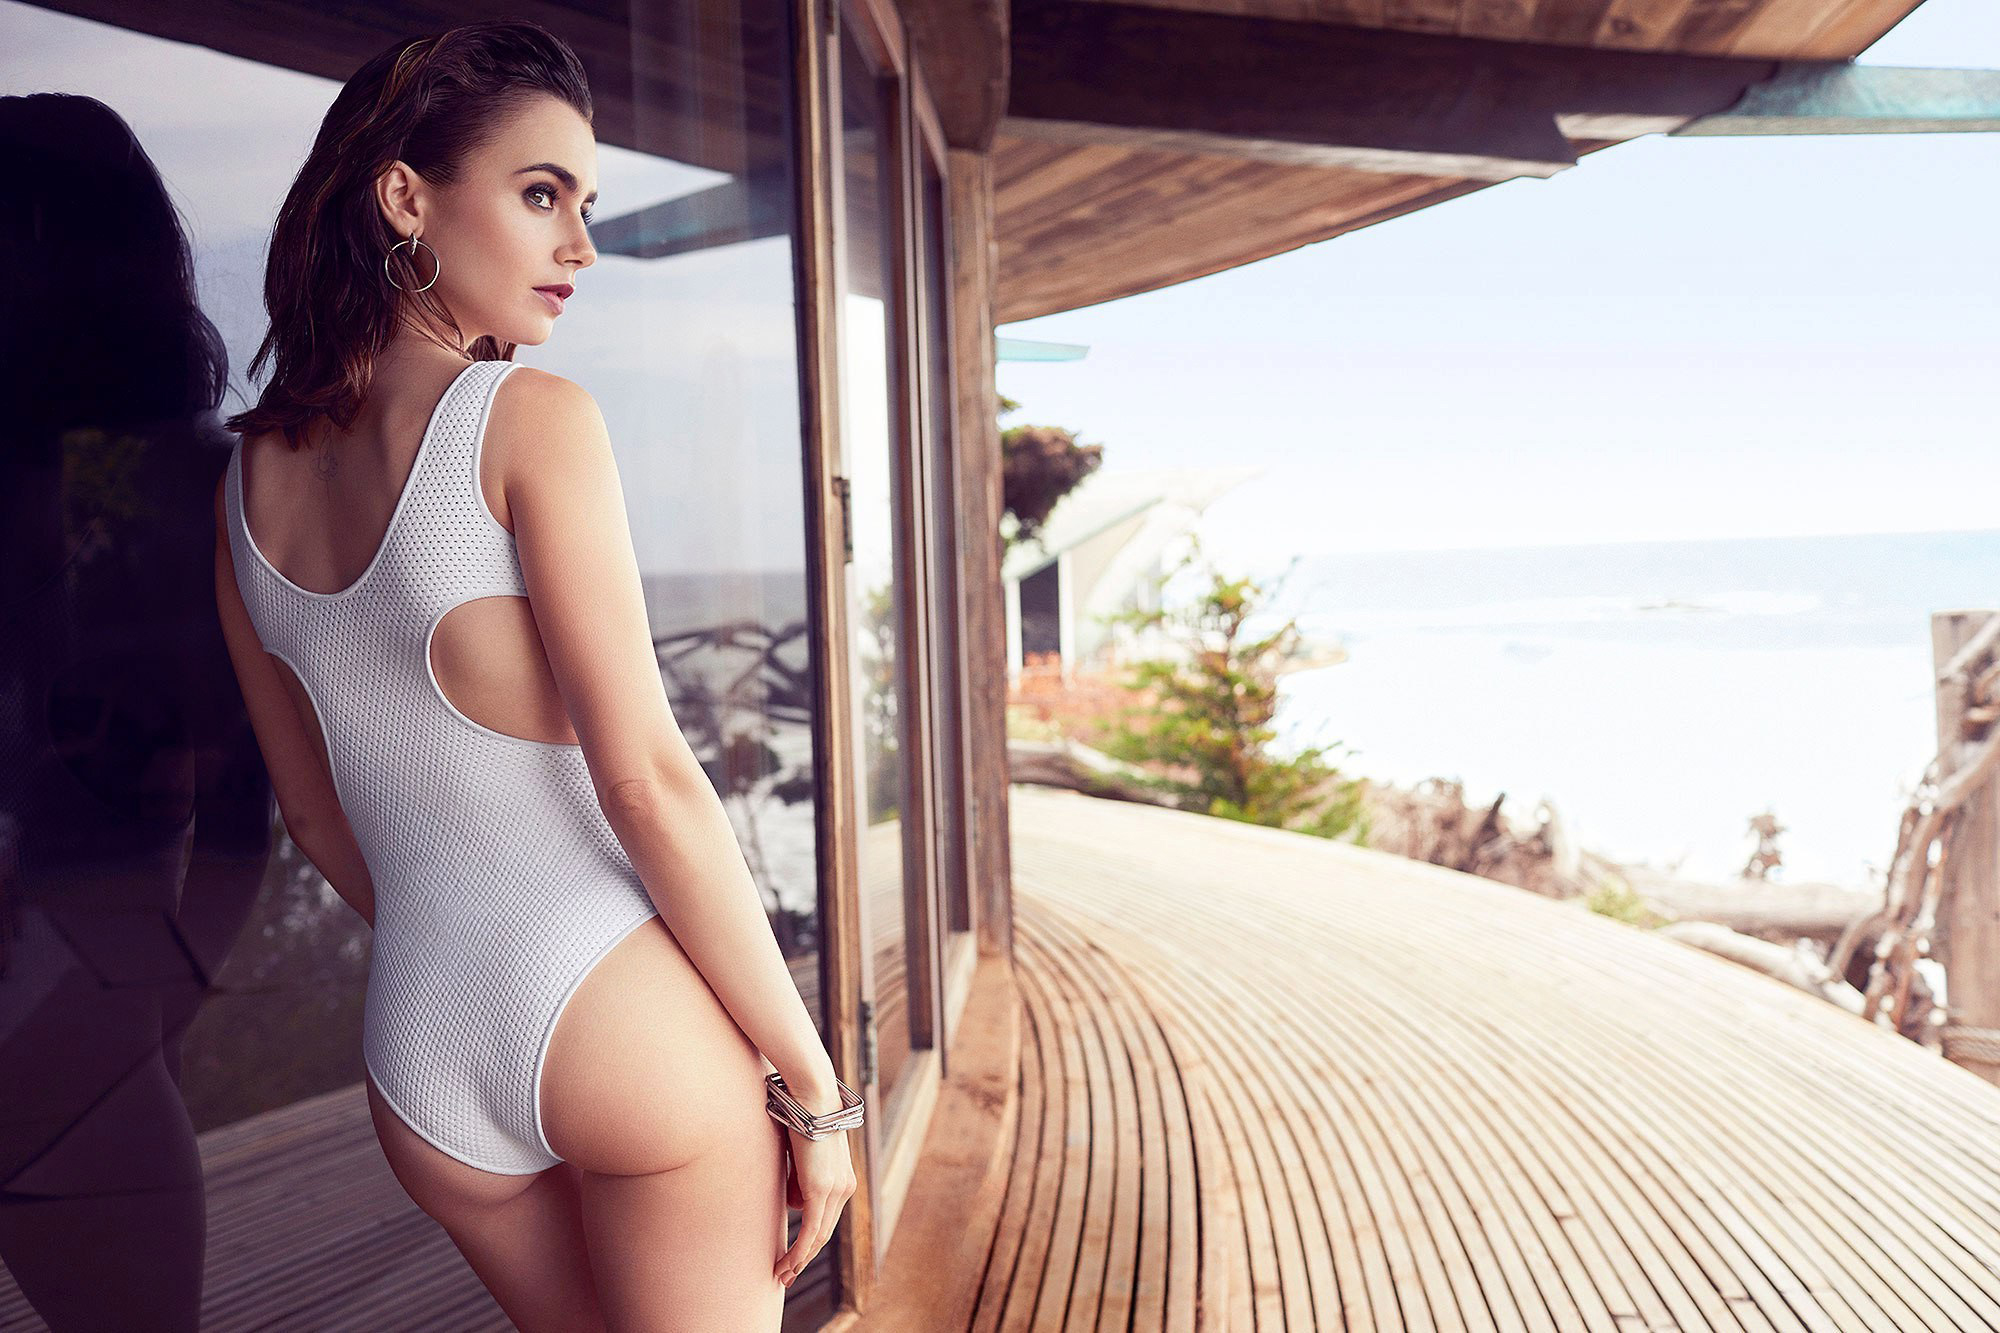 Lily Collins white bikini - Lily Collins Net Worth, Biography, Family, Movies, Boyfriends, Pictures&Wallpapers